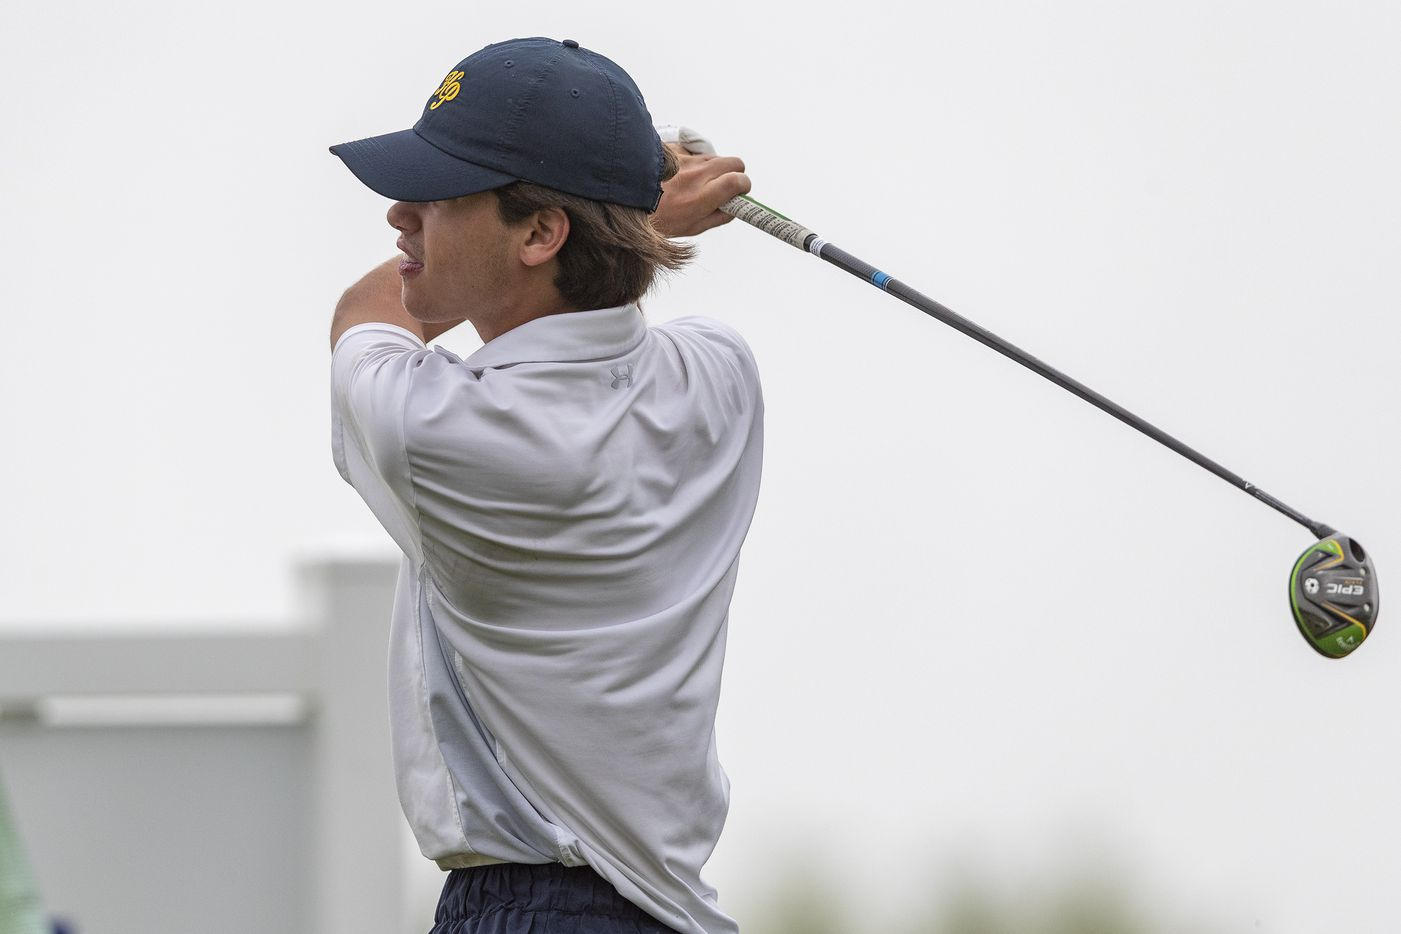 Highland ParkÕs Mack Duvall hits from the 10th tee box during round 1 of the UIL Class 5A boys golf tournament in Georgetown, Monday, May 17, 2021. (Stephen Spillman/Special Contributor)